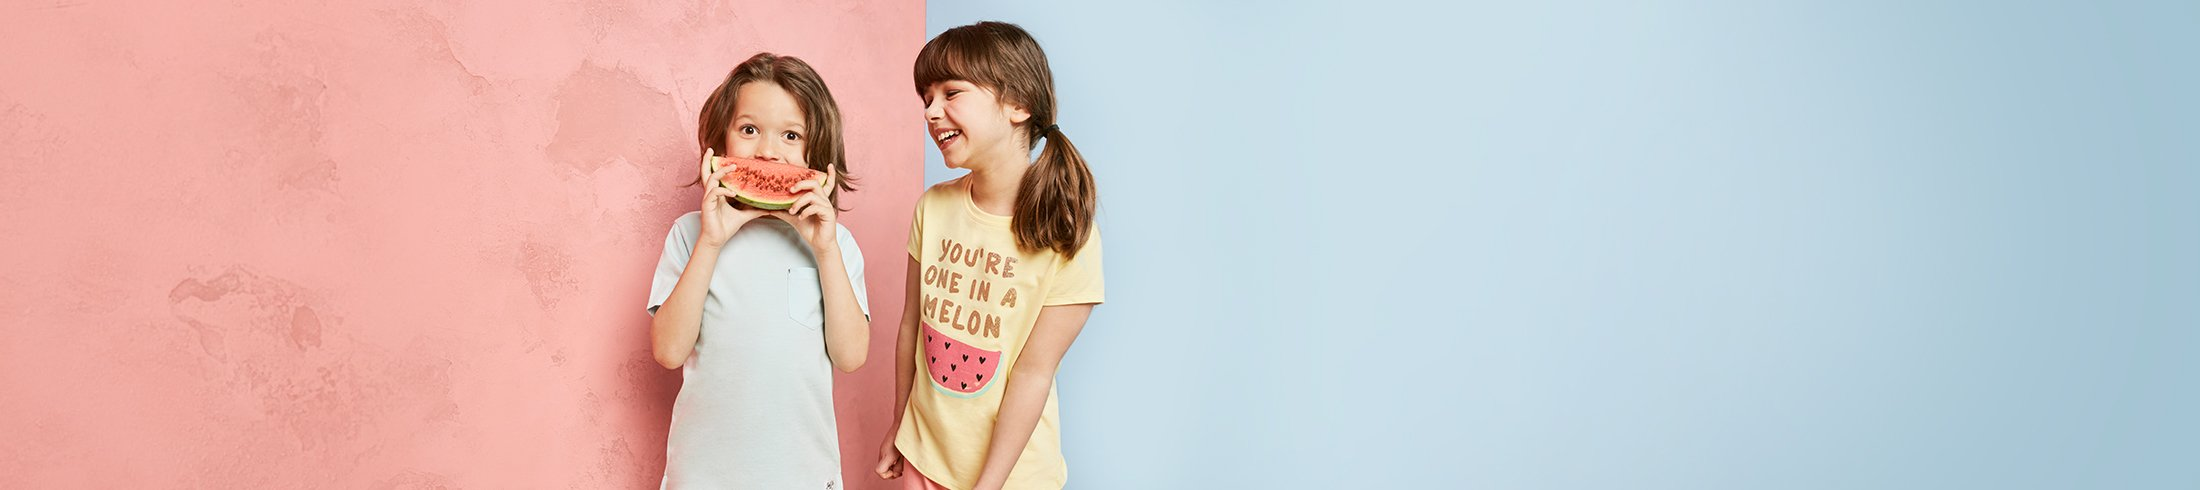 Shop 20% off selected kids' clothing